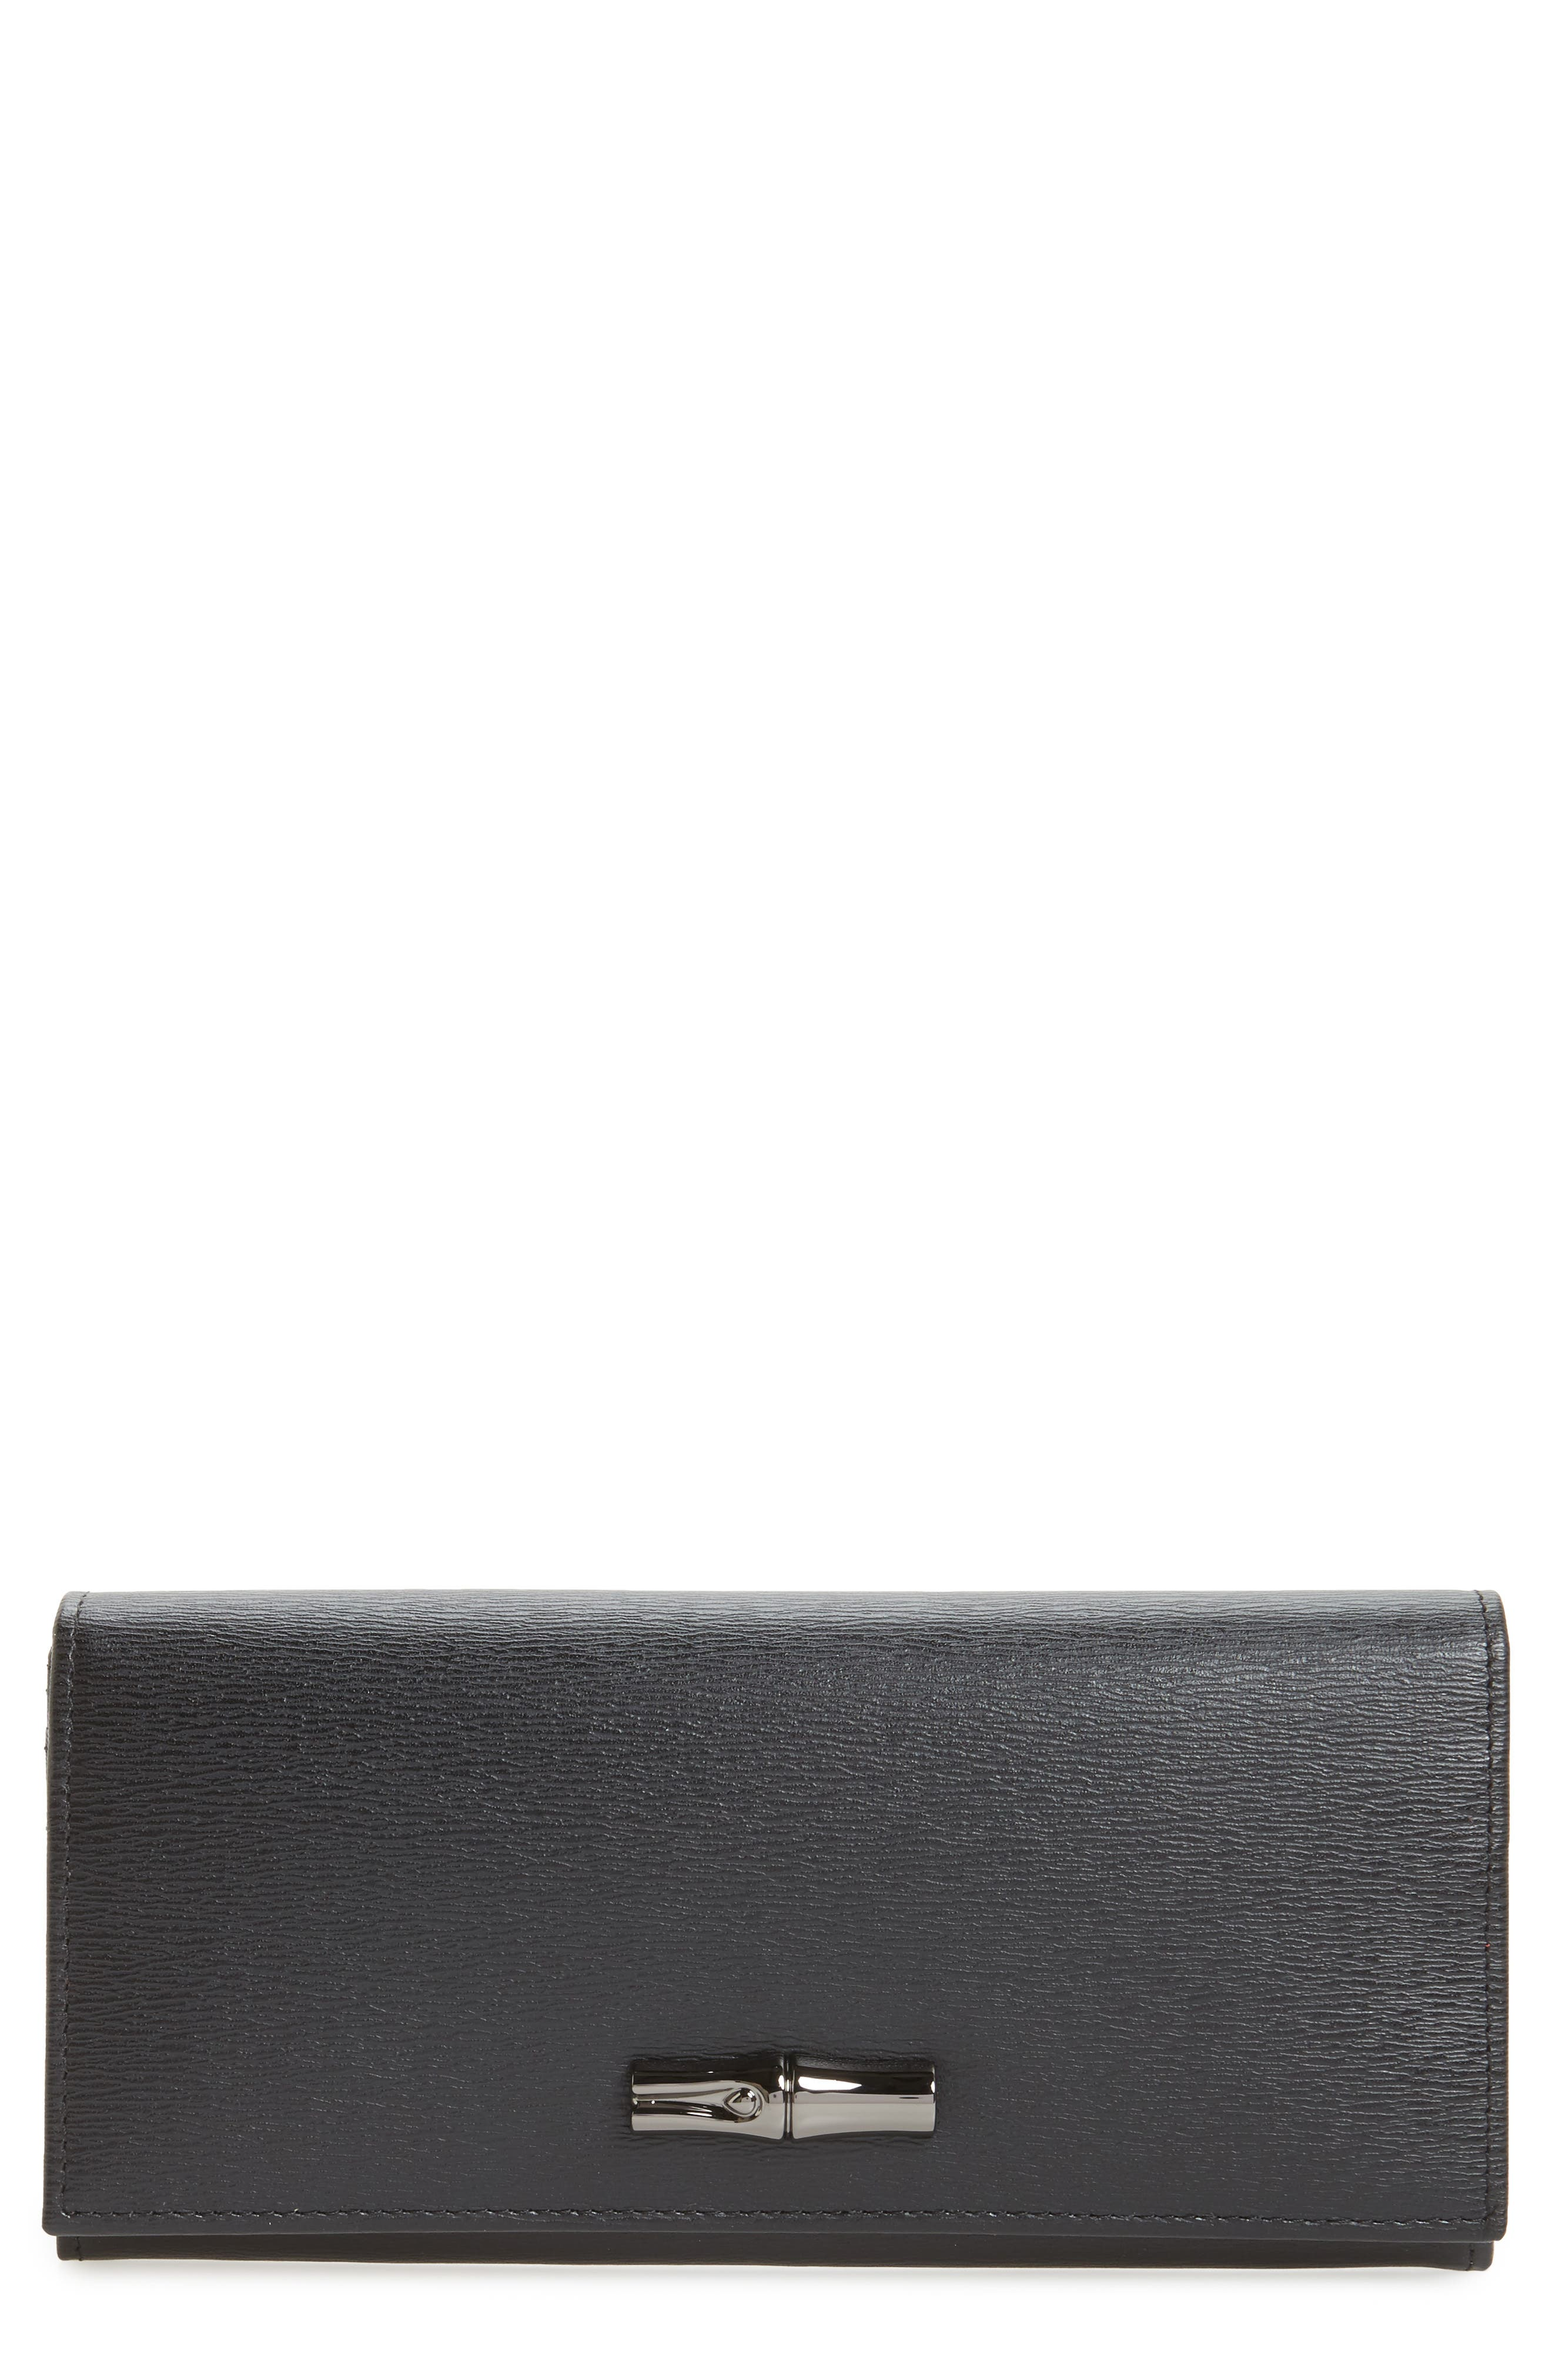 Roseau Leather Continental Wallet,                             Main thumbnail 1, color,                             002